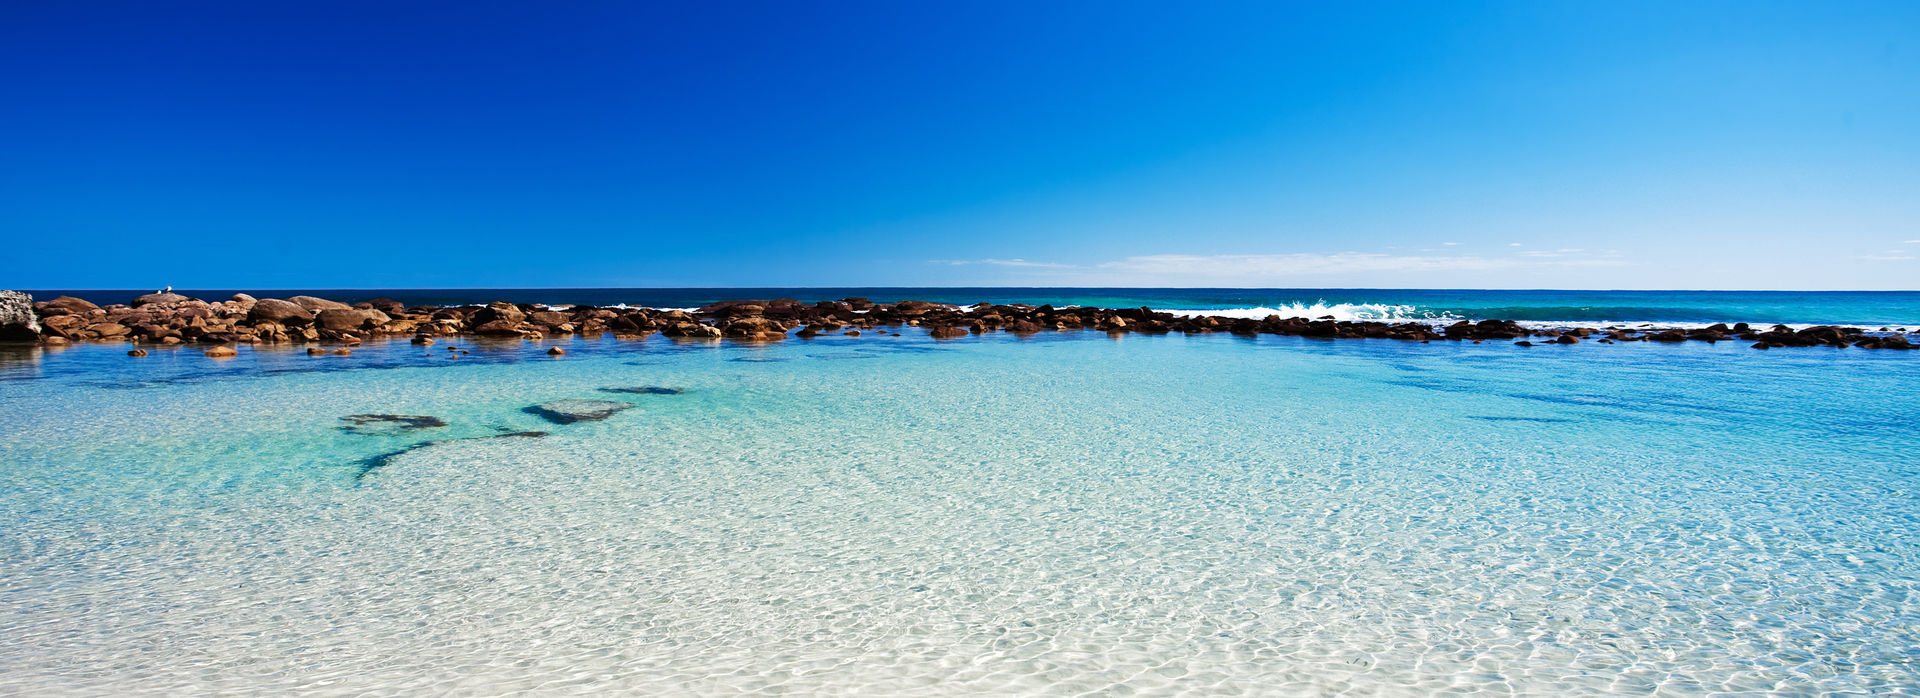 5 Bucket List Items You Can Tick Off in South Australia